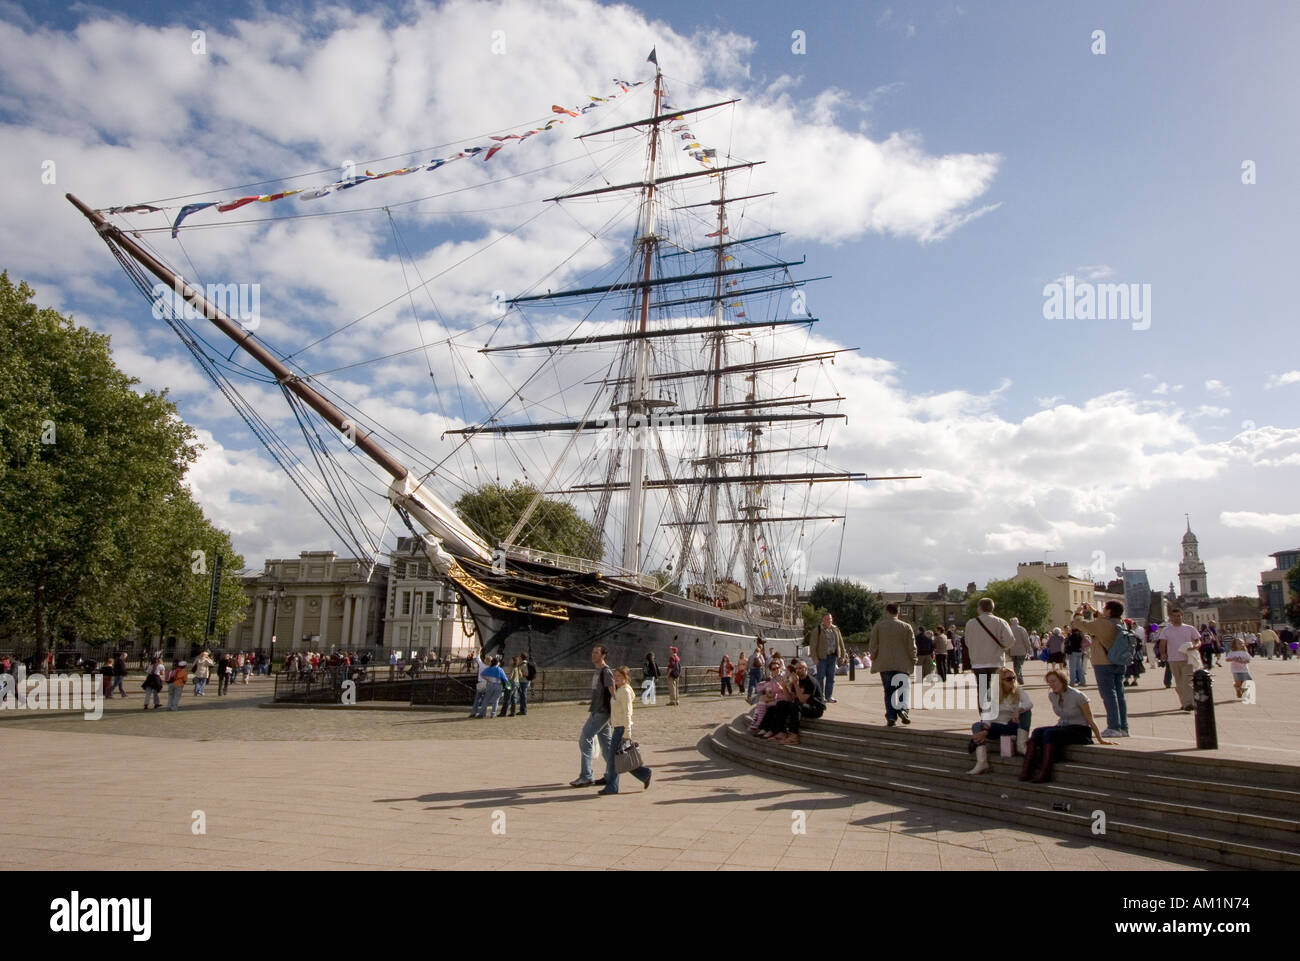 Le Cutty Sark tea clipper en permanent à Greenwich dans le sud de Londres, UK Photo Stock